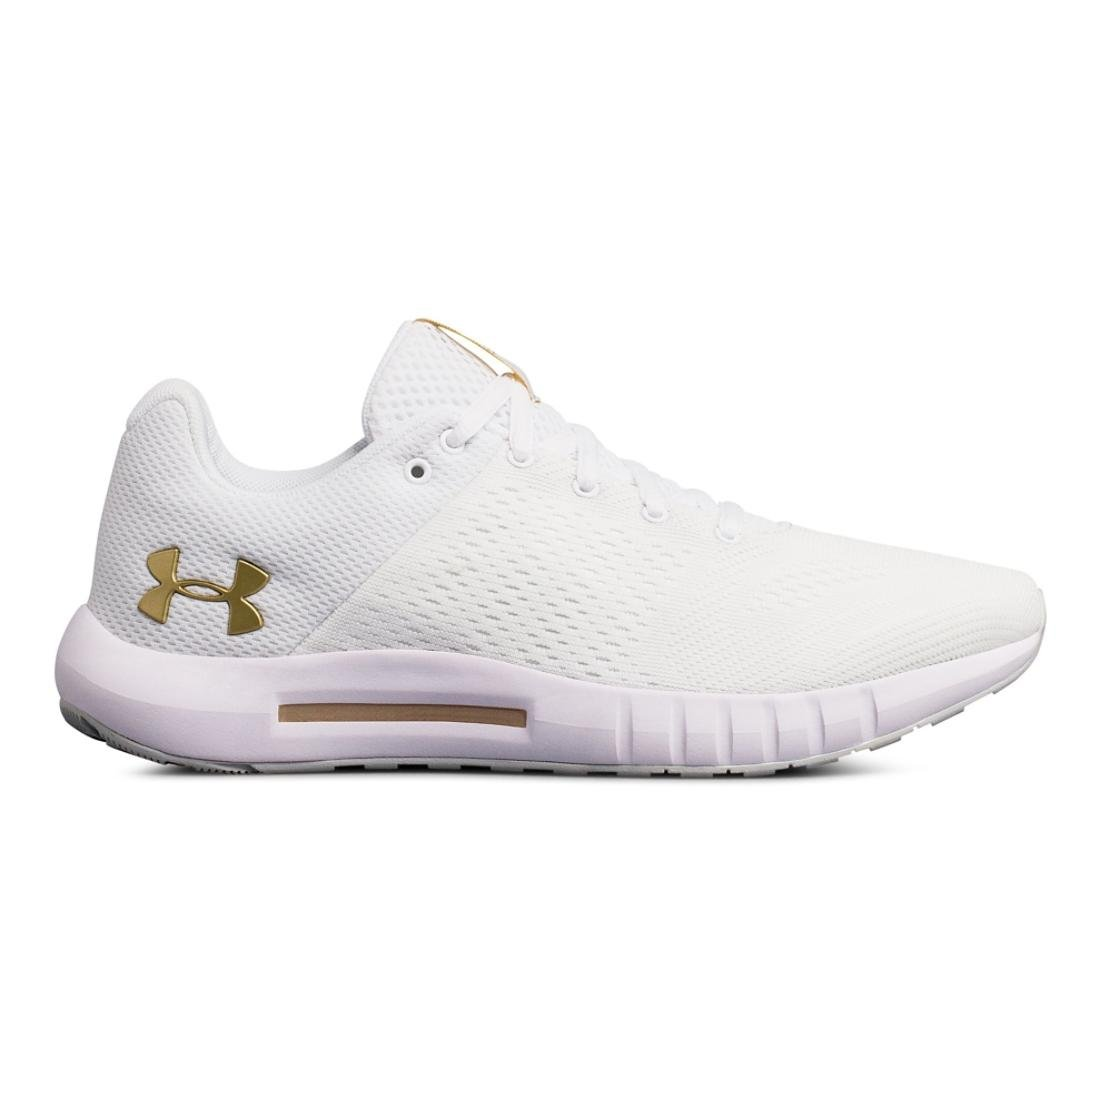 Under Armour Women's Micro G Pursuit Sneaker B075MPT78F 6 B(M) US|White/Elemental/Metallic Gold